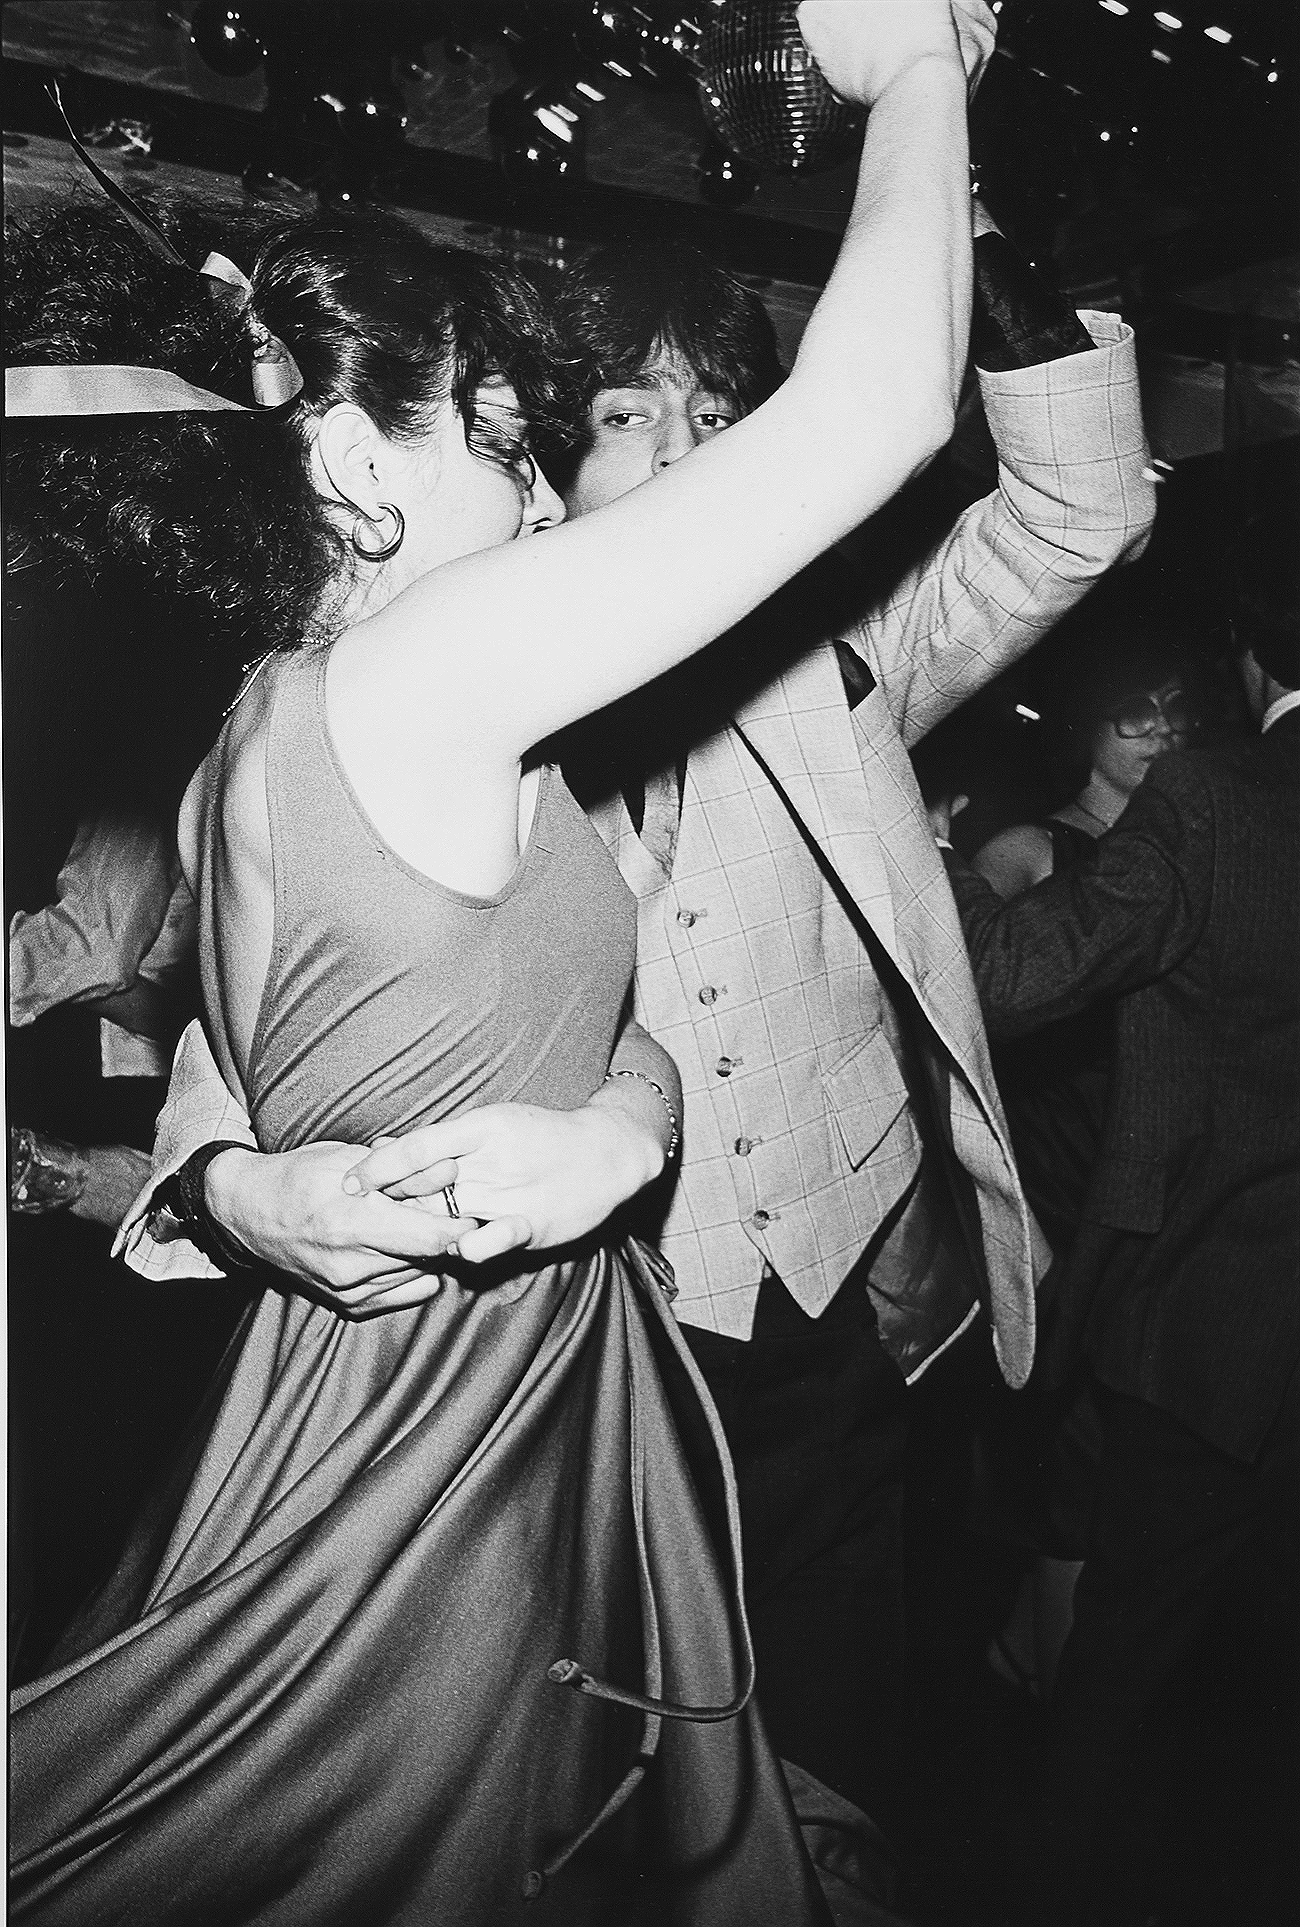 Tony_Ward_photography_early_work_Night_Fever_portfolio_1970's_erotic_dirty_dancing_couples_grinding_swing